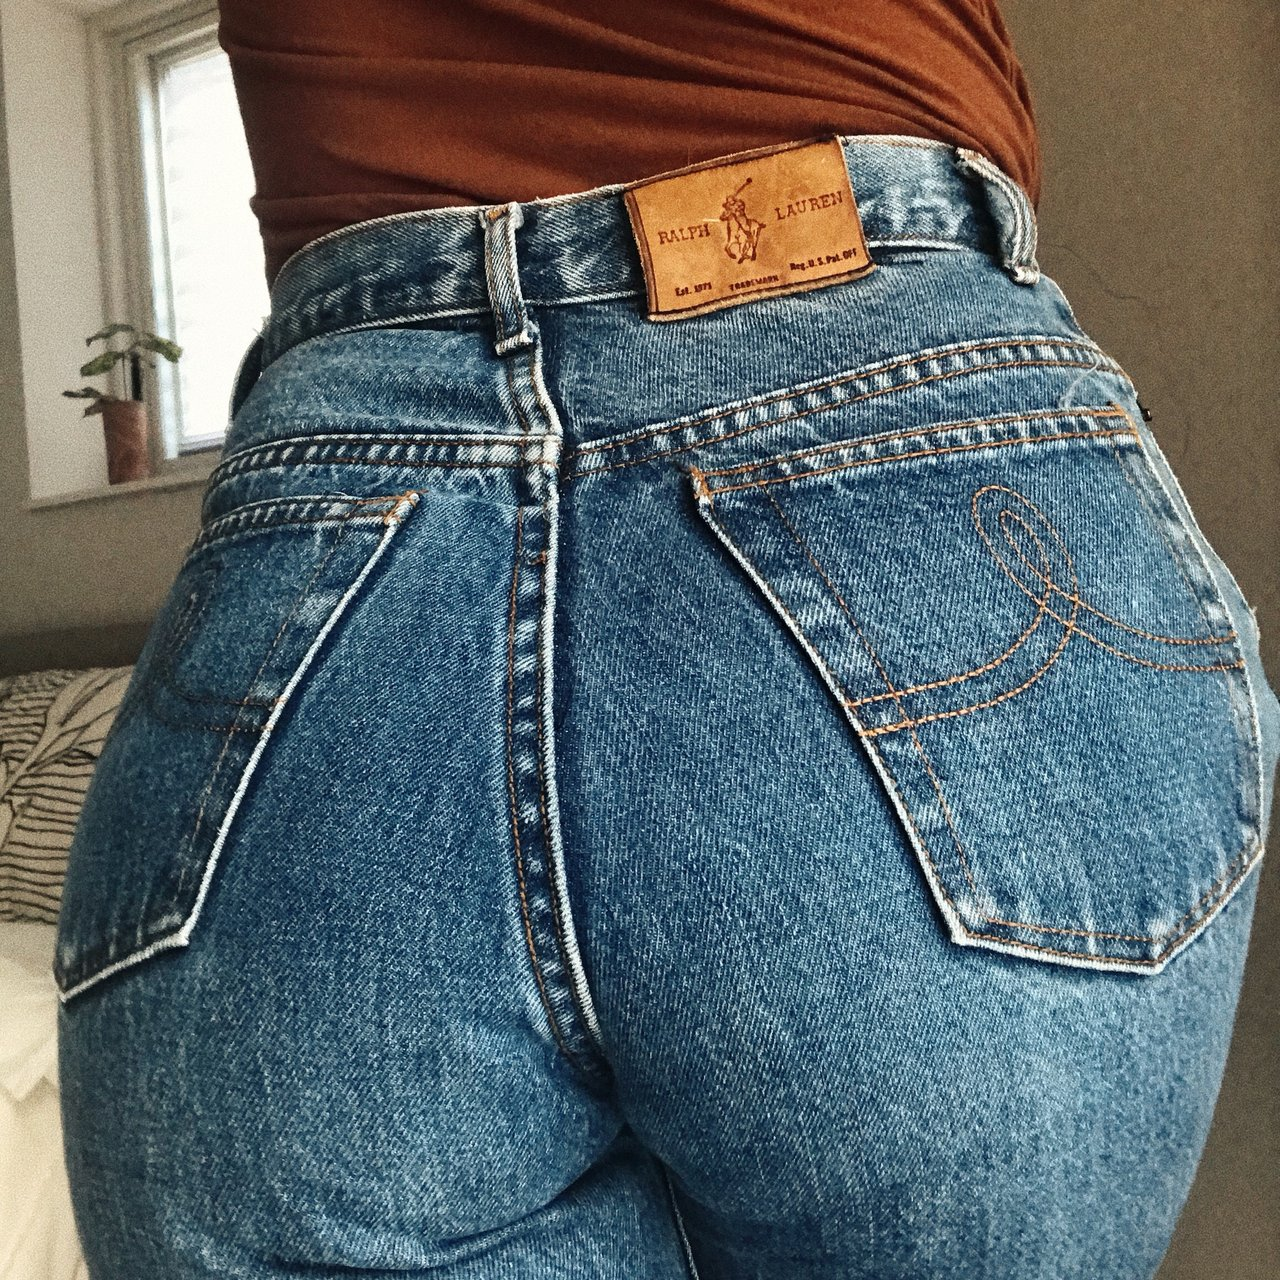 aa6215b60c454 @psychedelicthreads. in 20 hours. West Palm Beach, United States. Amazing  vintage Ralph Lauren high waisted jeans.